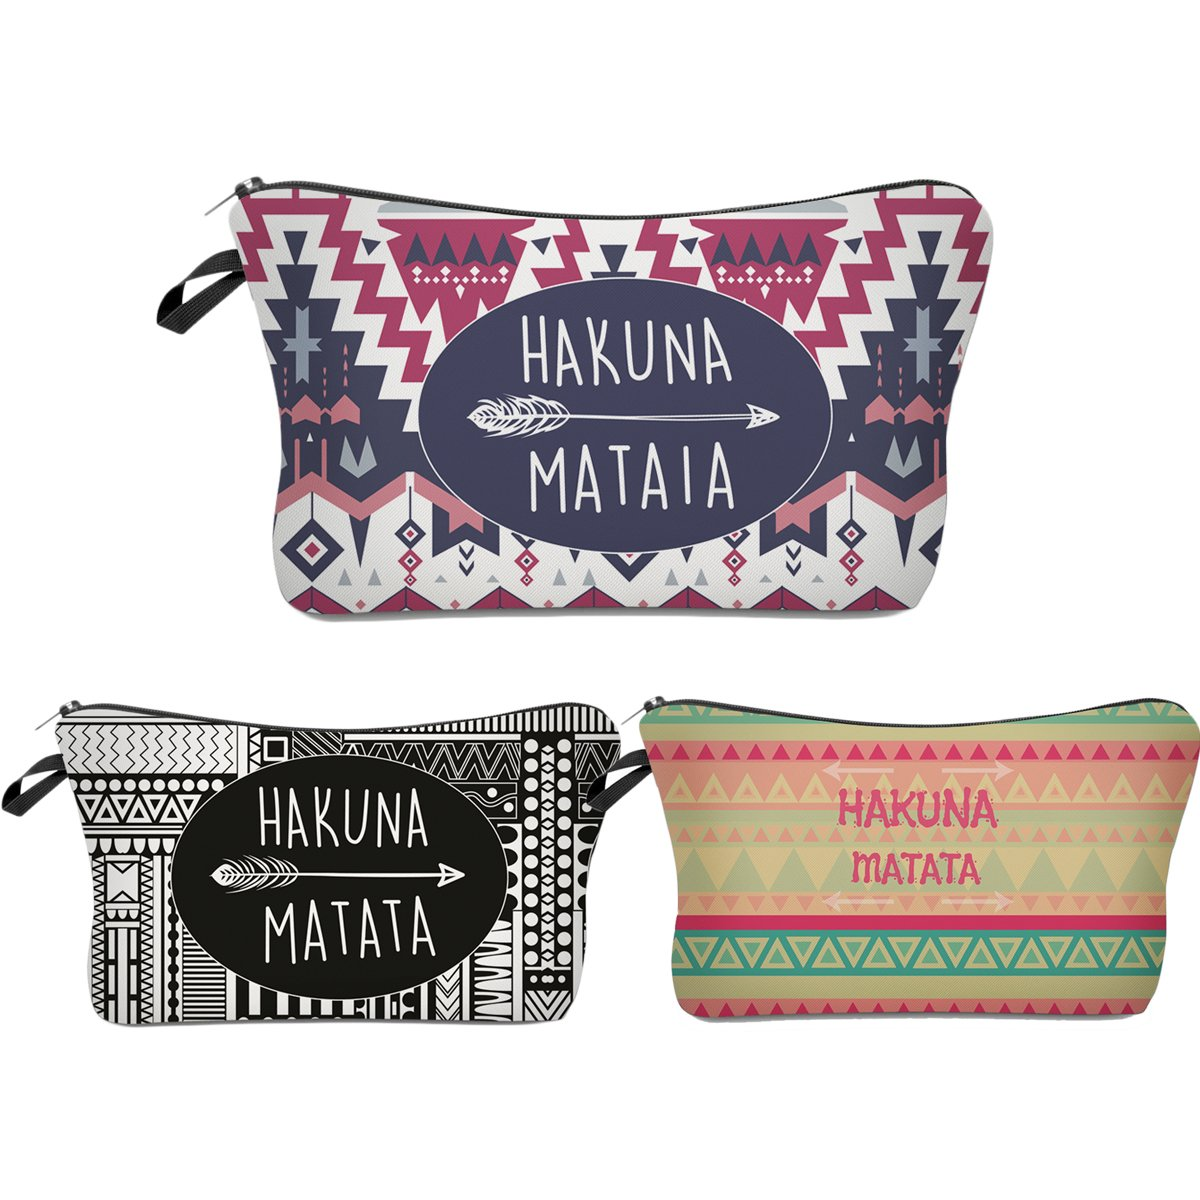 Roomy Cosmetic Bag,3 piece Set Deanfun Waterproof Travel Toiletry Pouch Makeup with Zipper (Hakuna Matata) by Deanfun (Image #1)